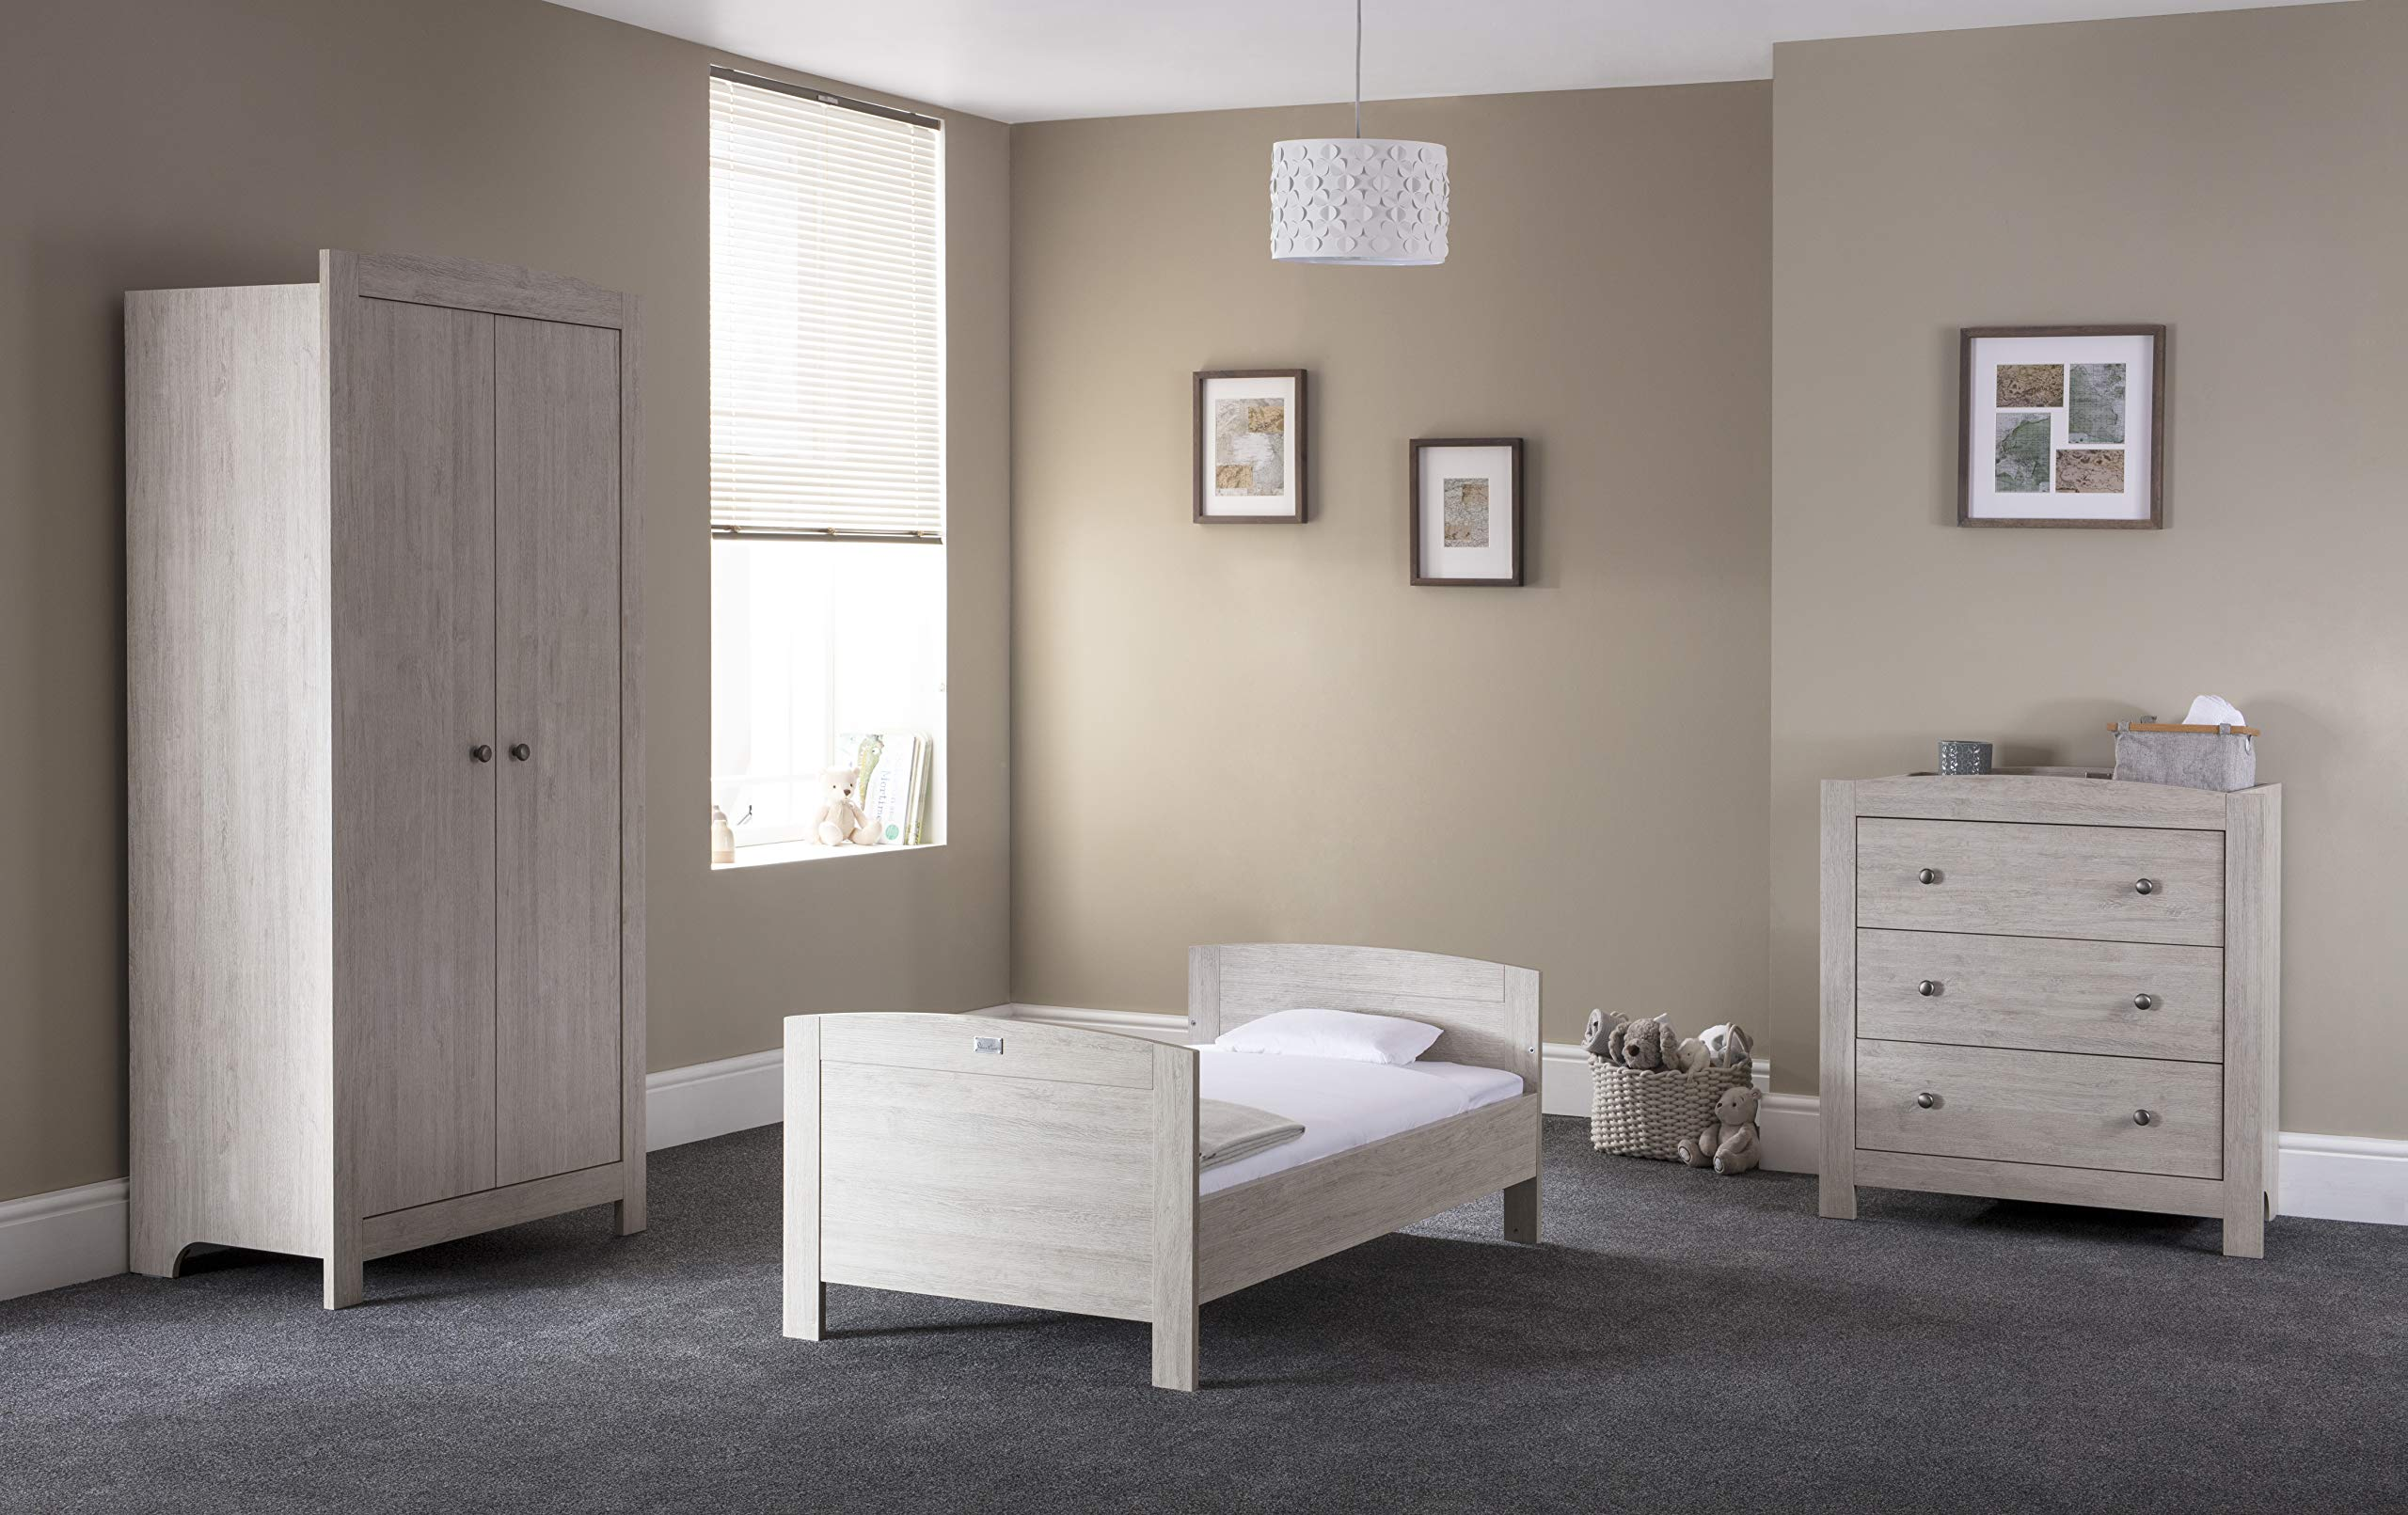 Silver Cross New England Cot Bed and Wardrobe Silver Cross 3 base height positions Suitable from birth to 4 years Converts into toddler bed 6